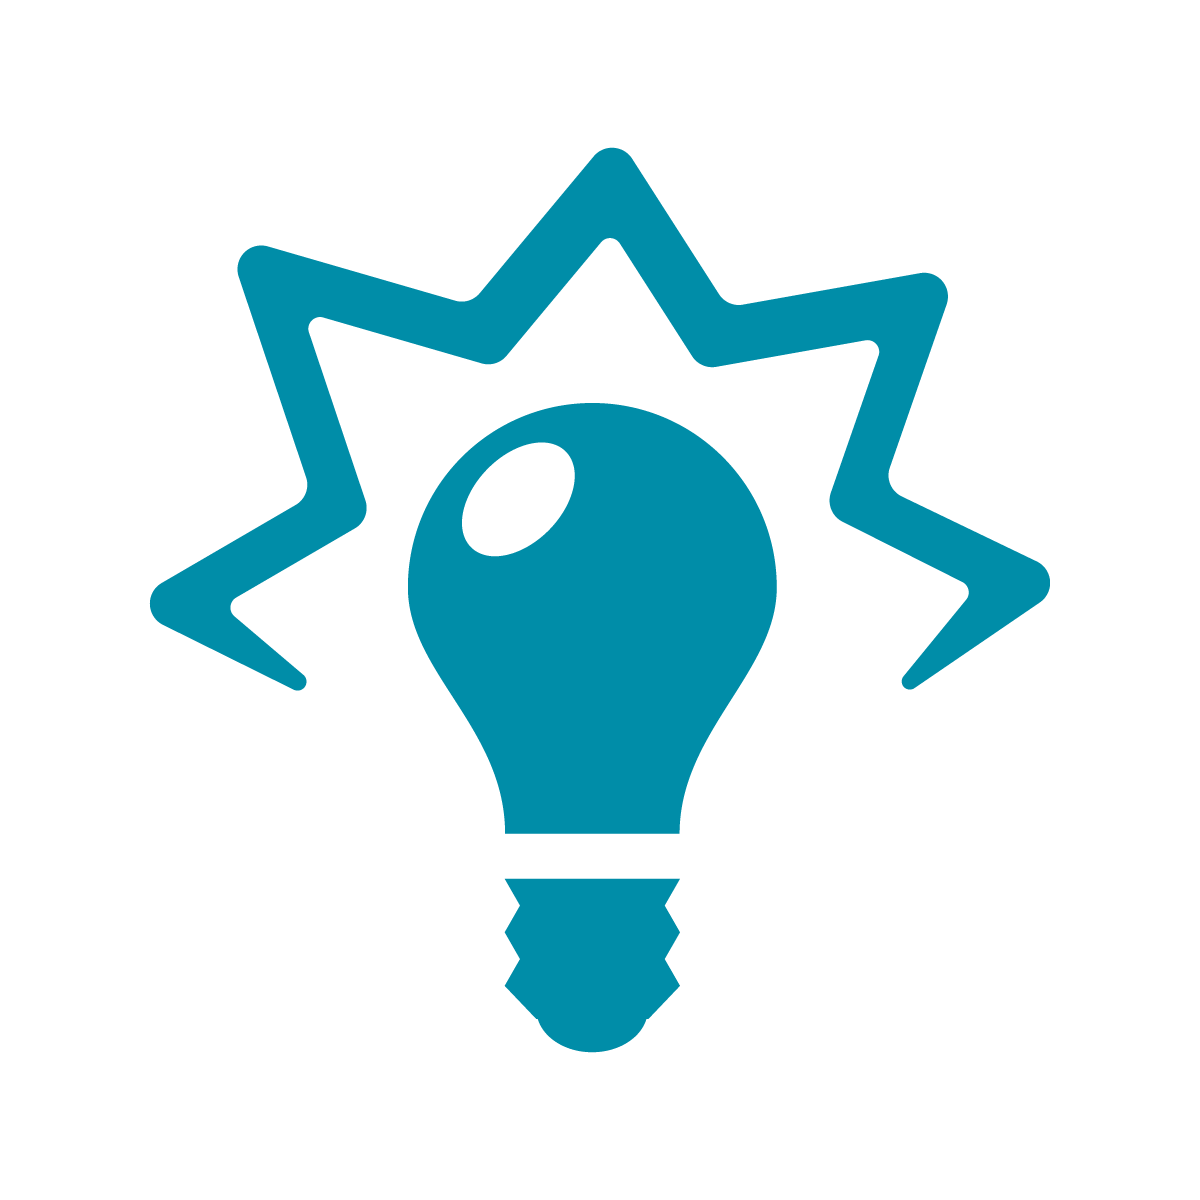 Turquoise graphic of a lightbulb lit up